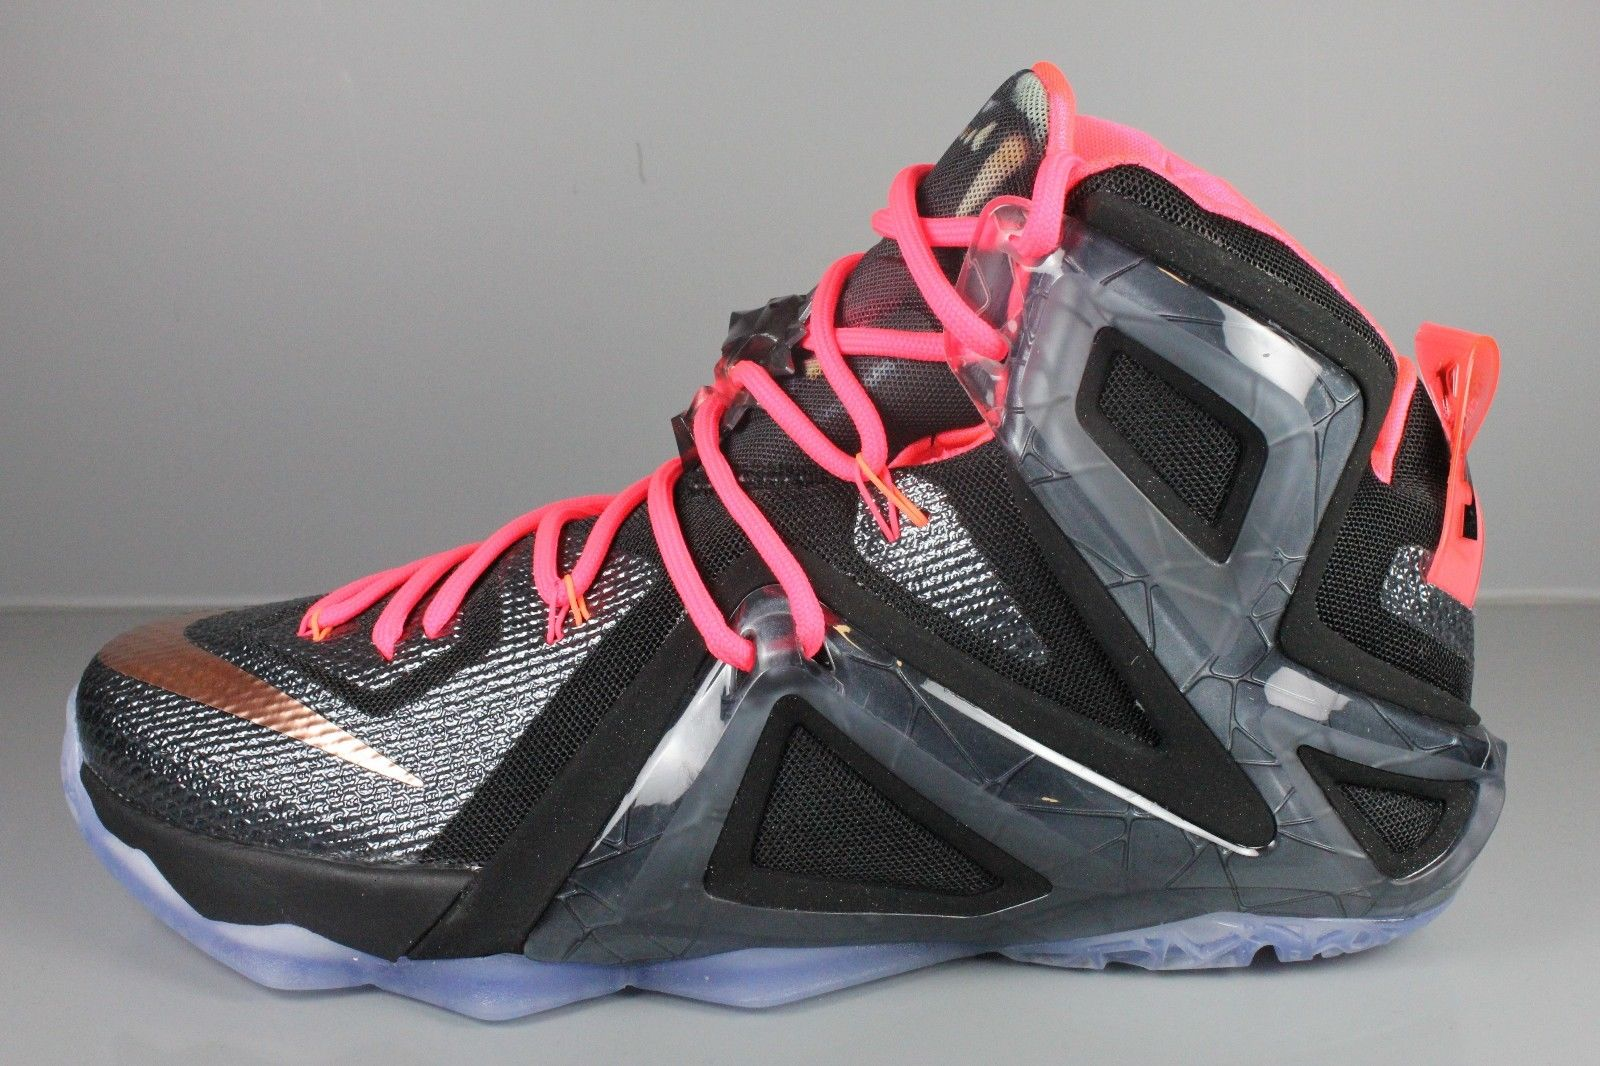 competitive price 7cca6 789b7 Images via eBay. by Brendan Dunne. Time is ticking on the Nike LeBron 12  Elite ...